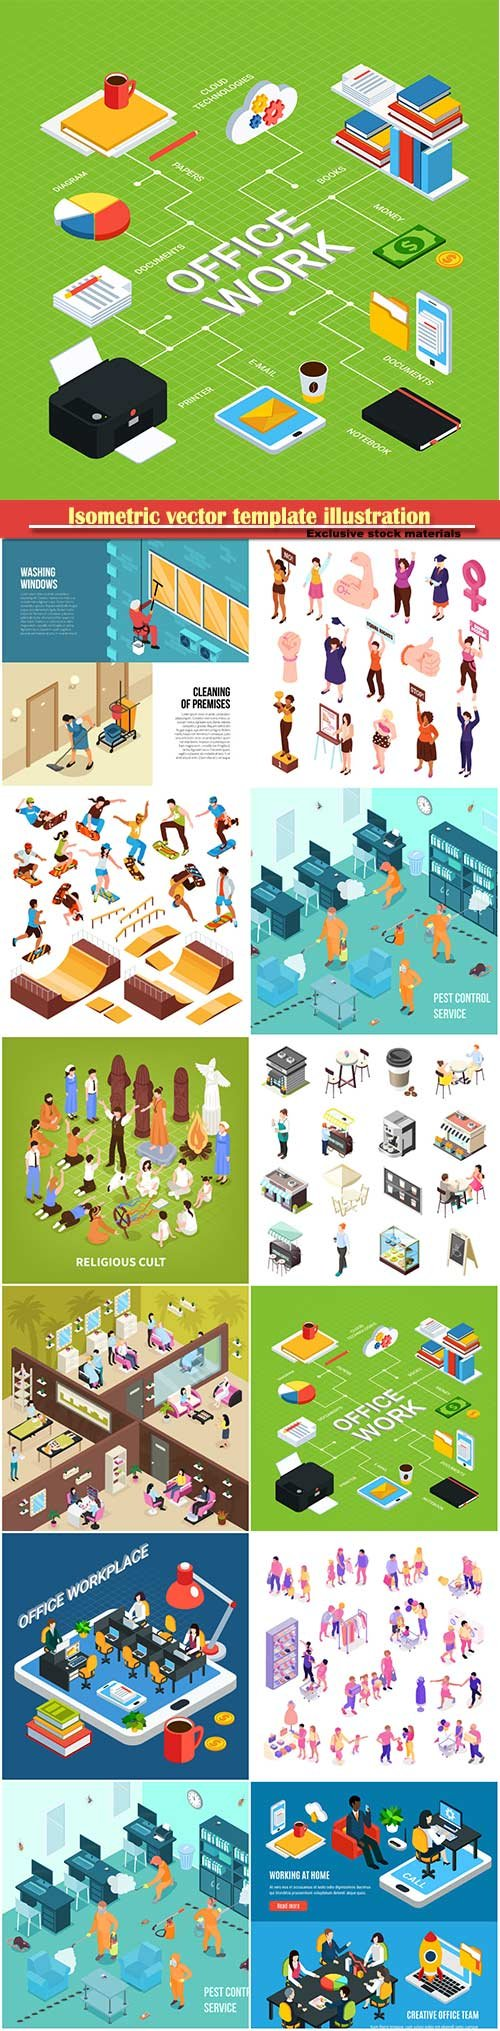 Isometric vector template illustration # 16